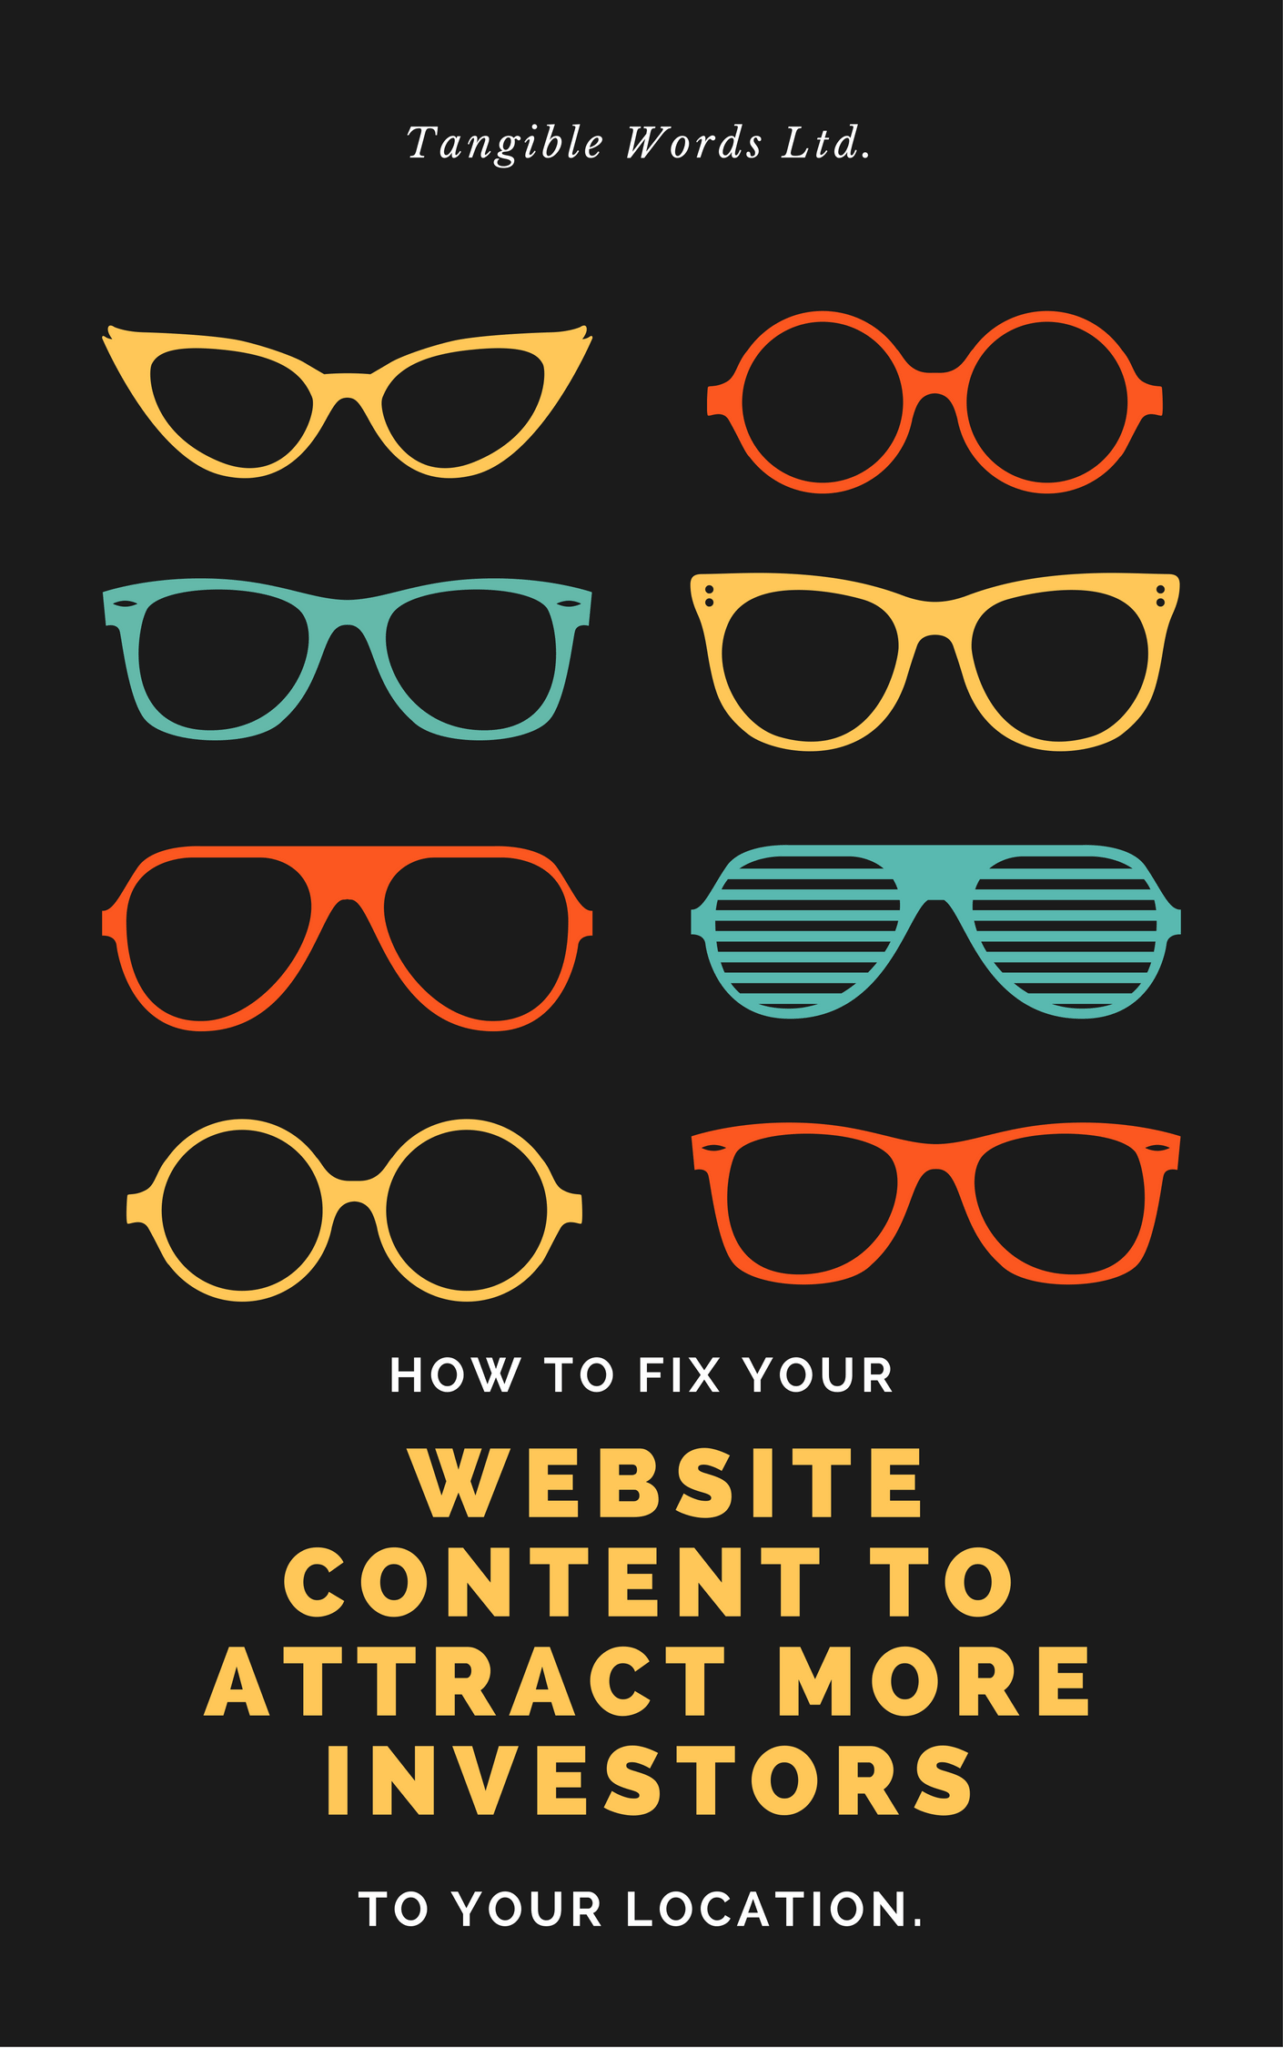 How to fix your website content to attract more investors